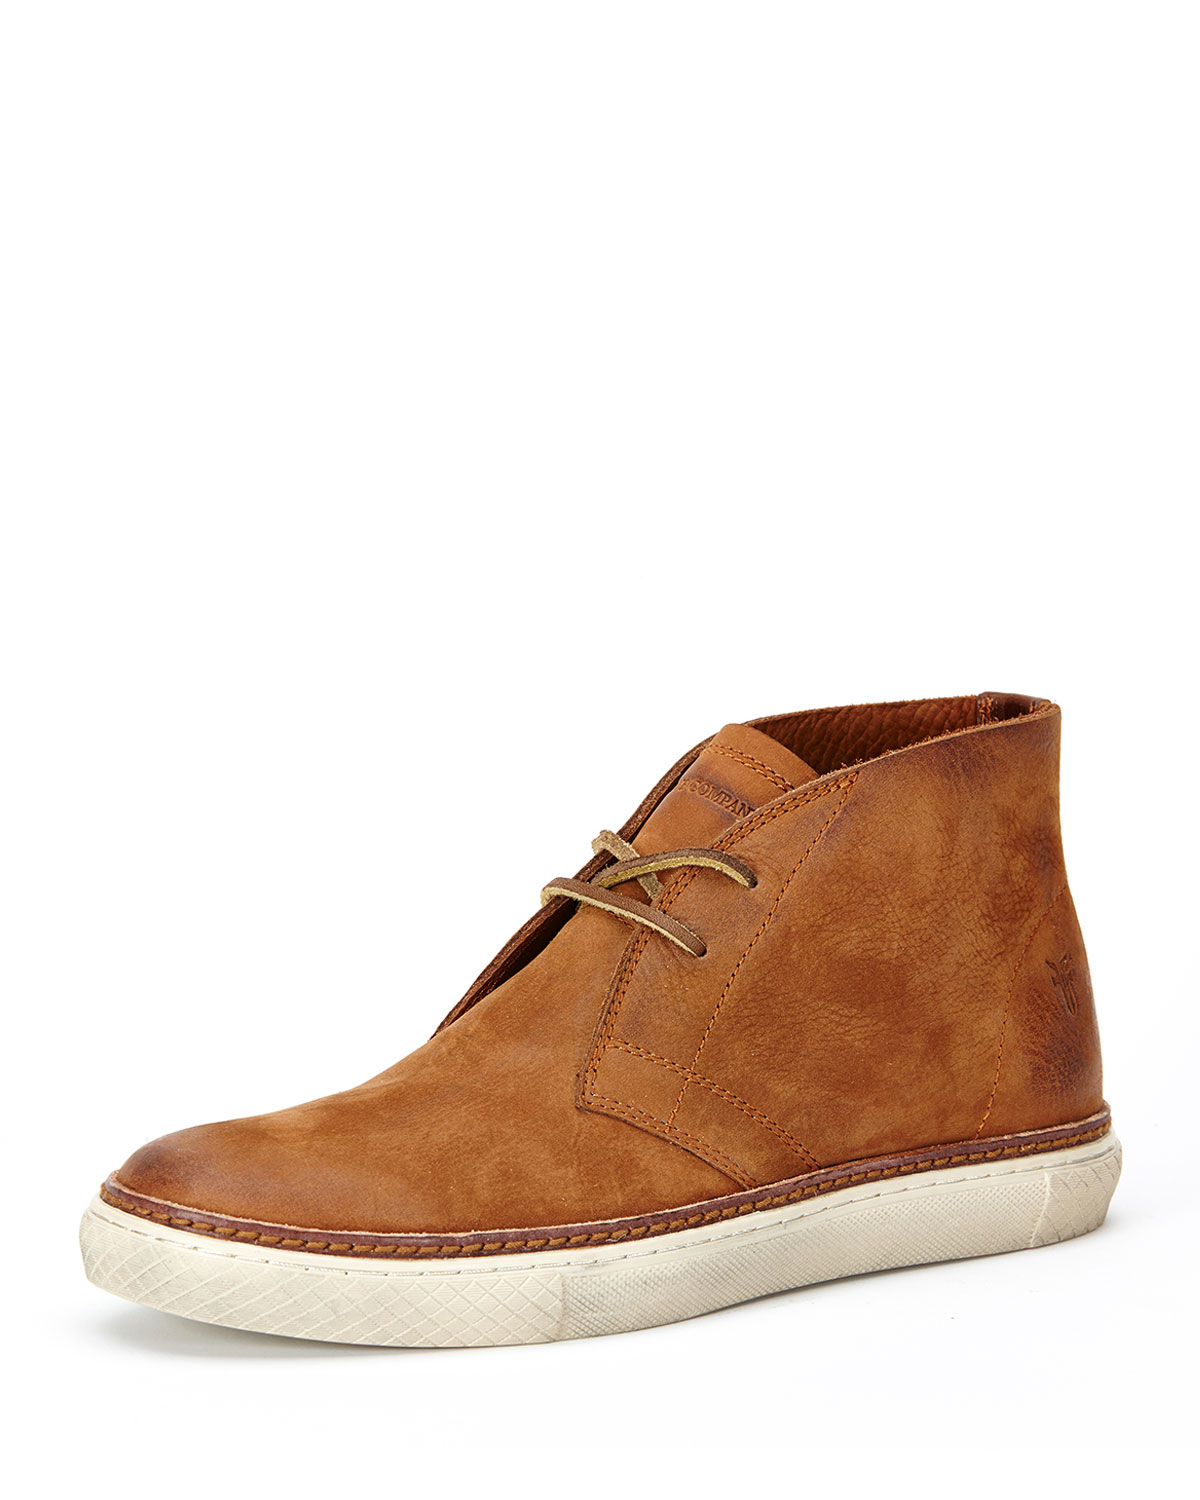 Frye Gates Chukka Boots In Brown For Men Lyst